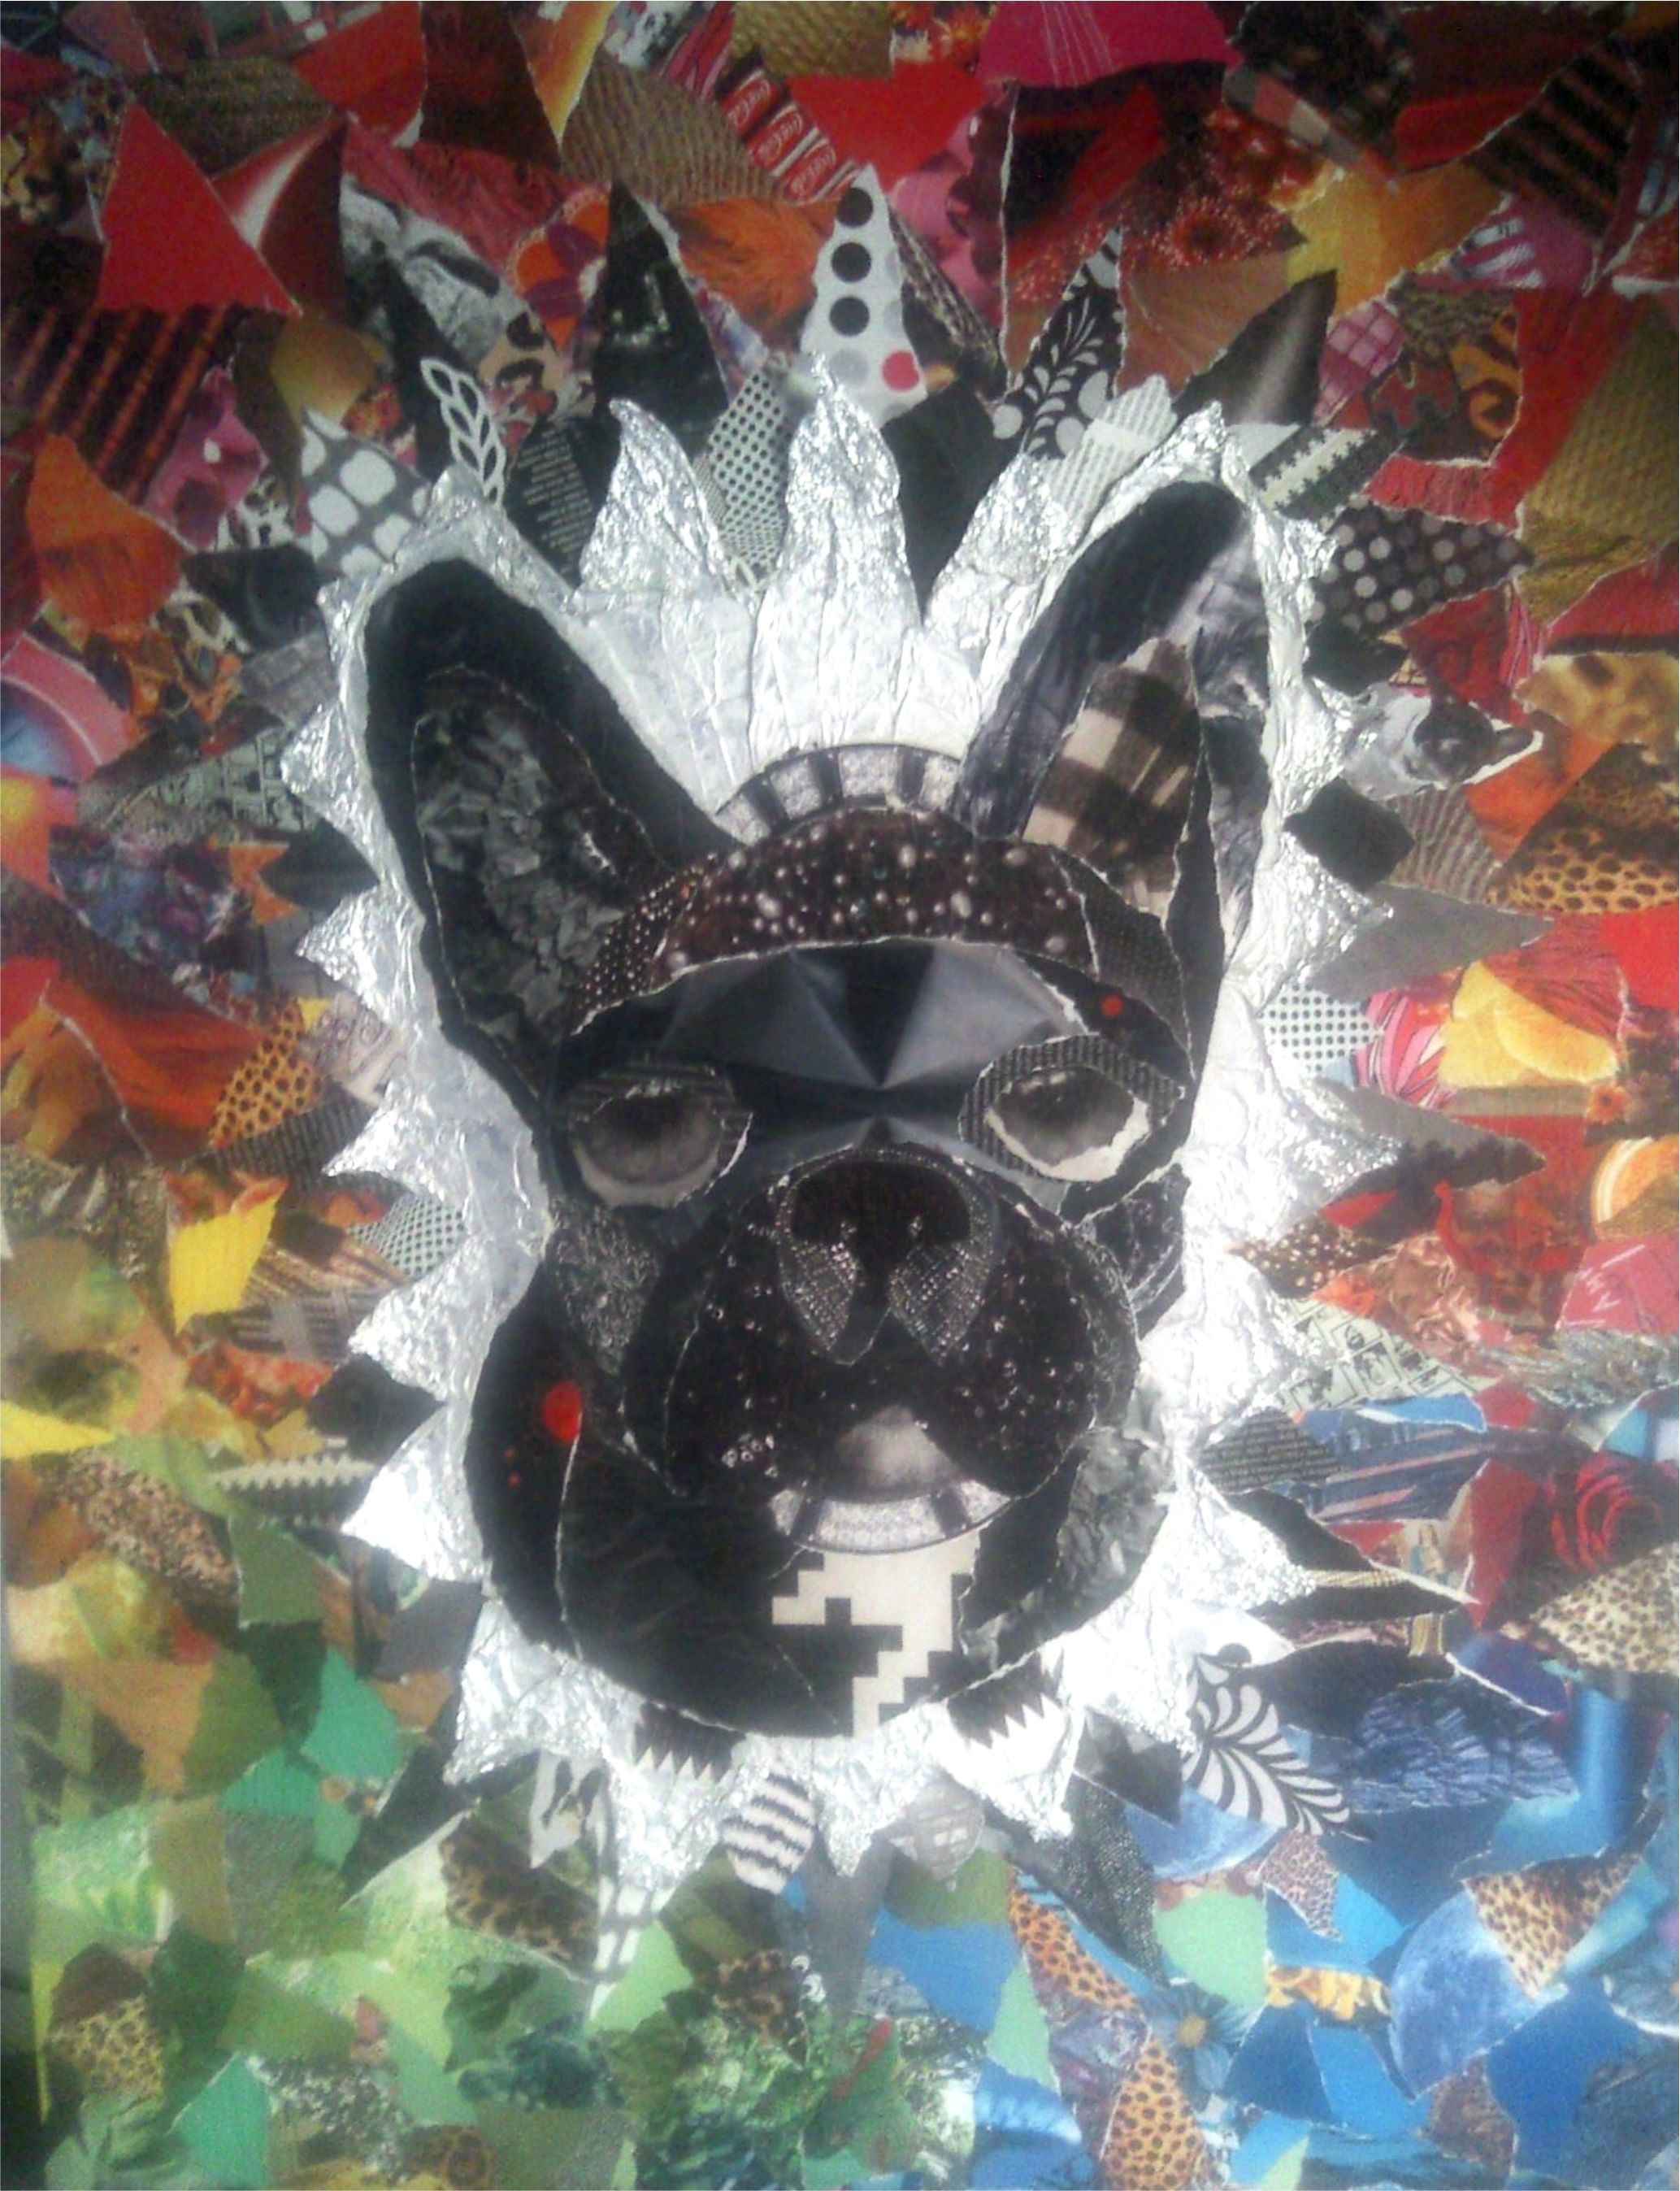 Toto collage | Collage/Mixed Media | Pinterest | Collage, Paintings ...